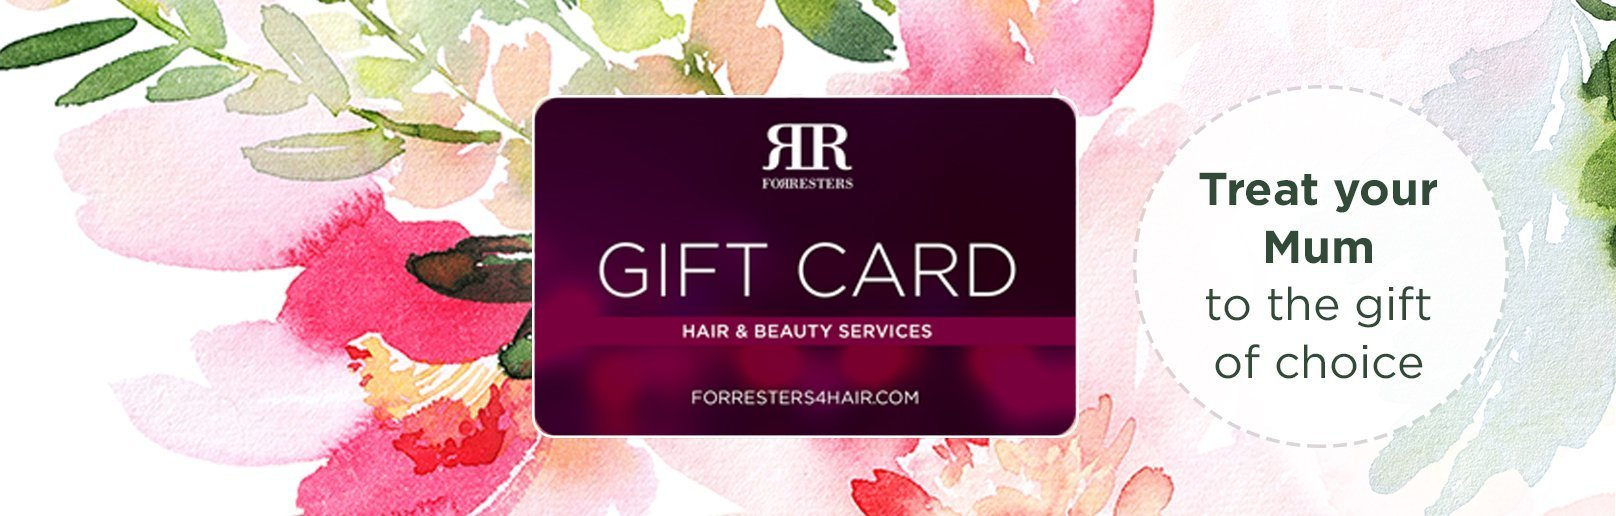 A floral background featuring a Forresters gift card image and advertising treat your mum to the gift of choice